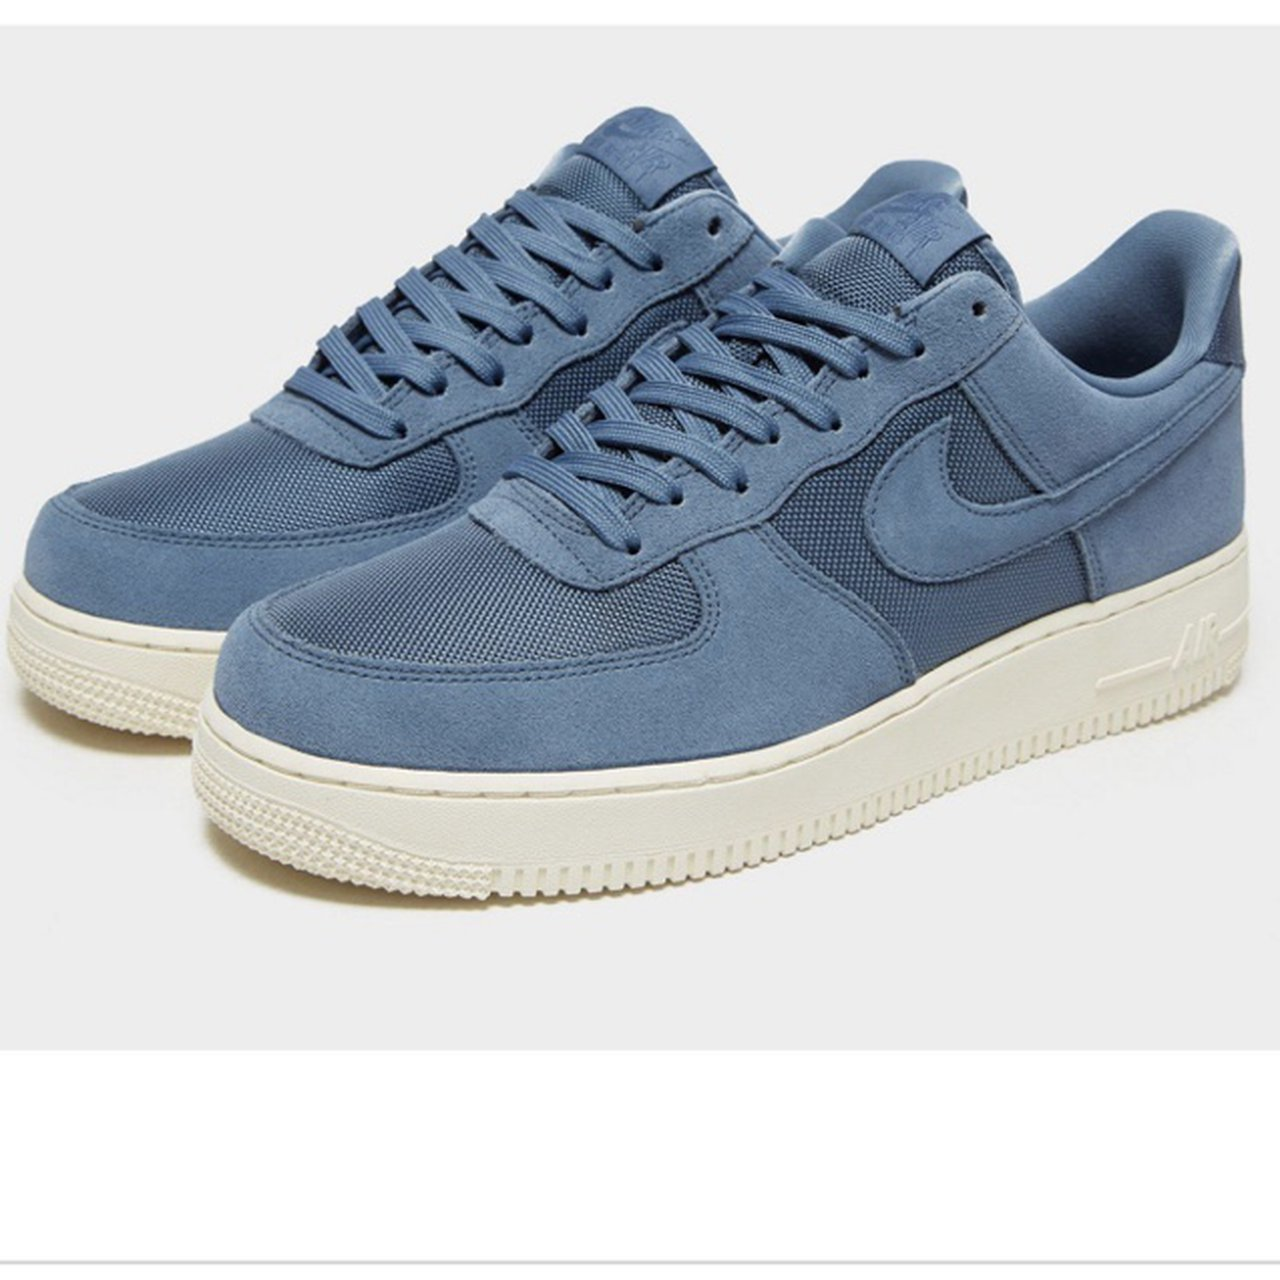 Air Force 1 07 low essential in blue